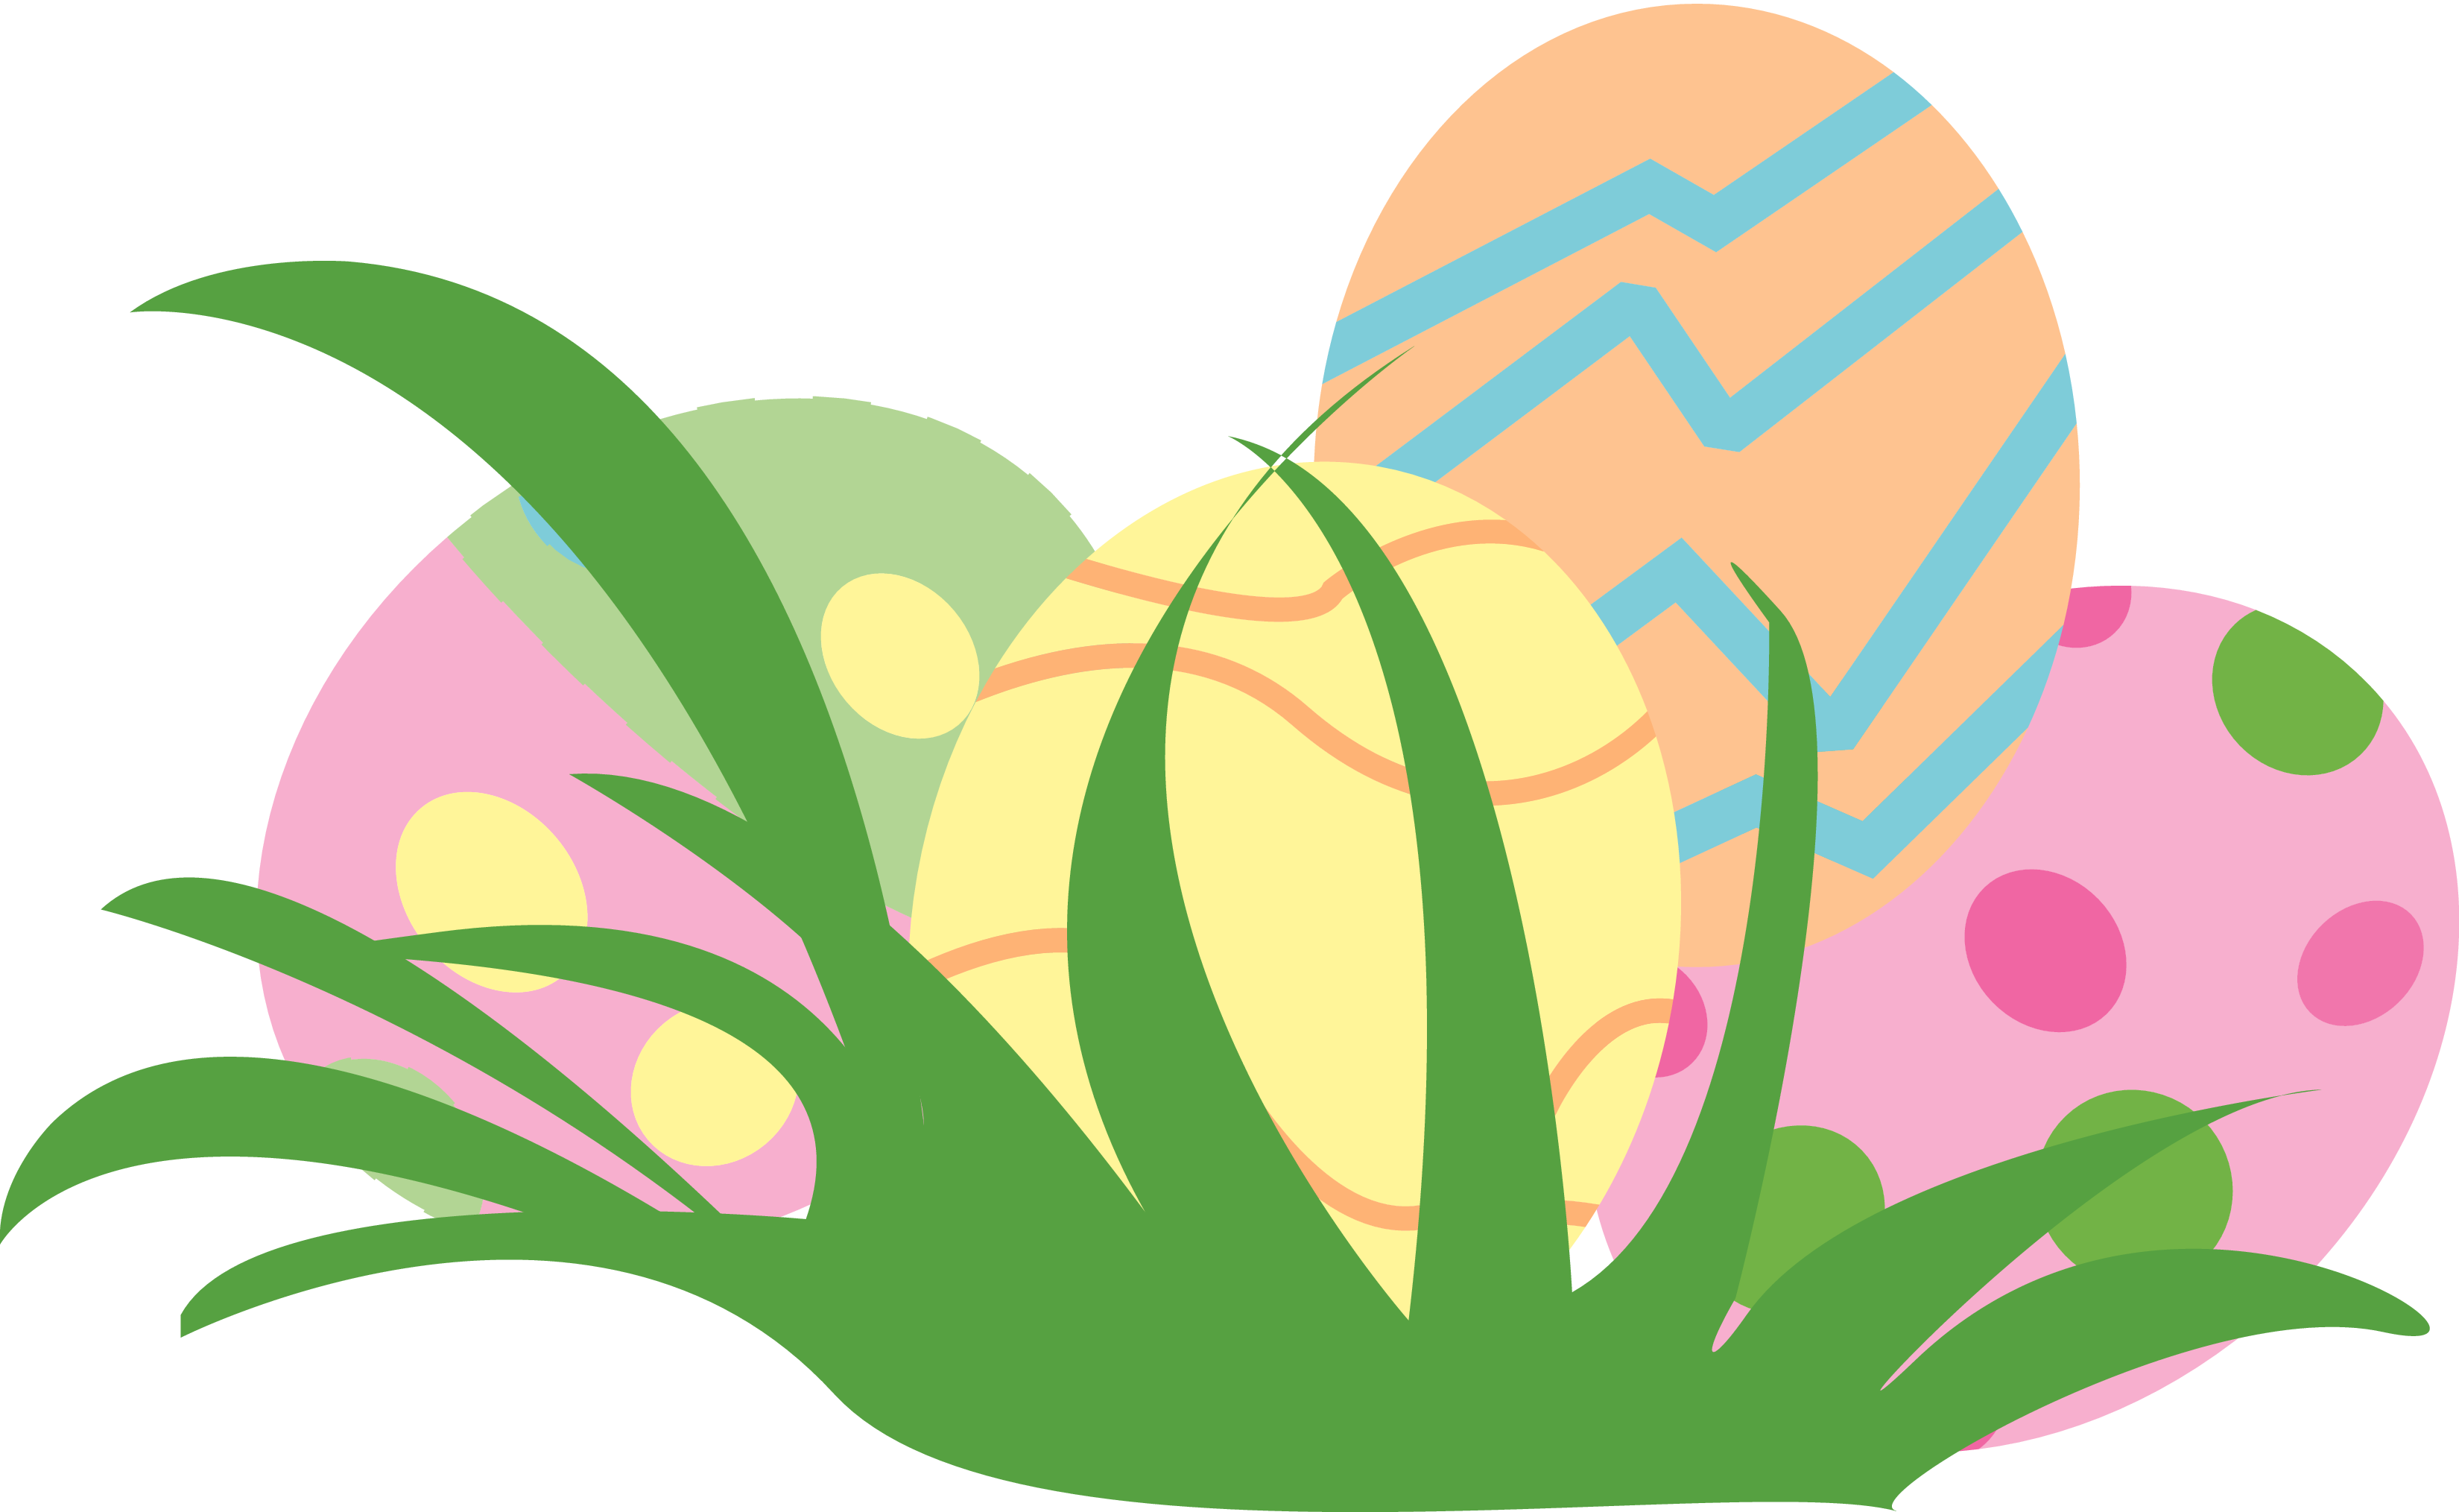 Easter egg clipart svg library Easter eggs clip art - ClipartFest svg library